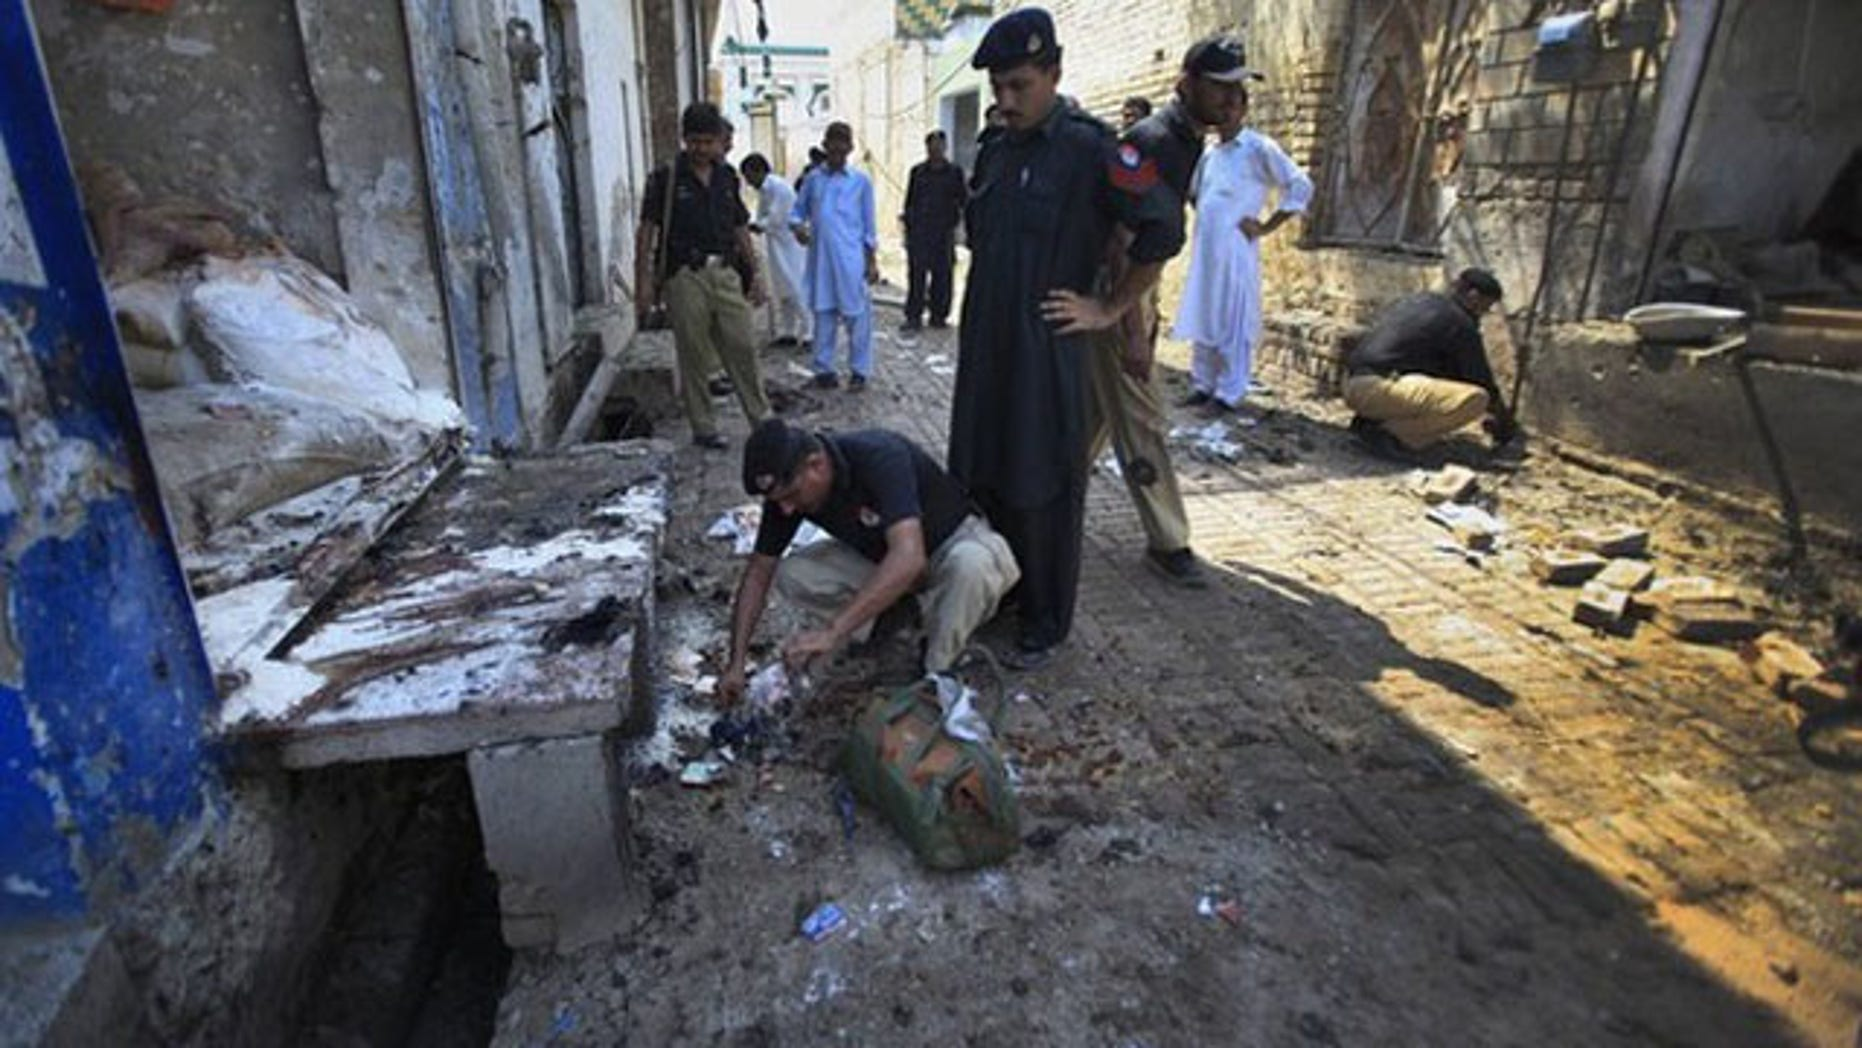 July 26: Policemen collect evidence at the site of a homicide bomb attack in Pabbi town, 26 km (16 miles) east of the provincial capital, Peshawar (Reuters).